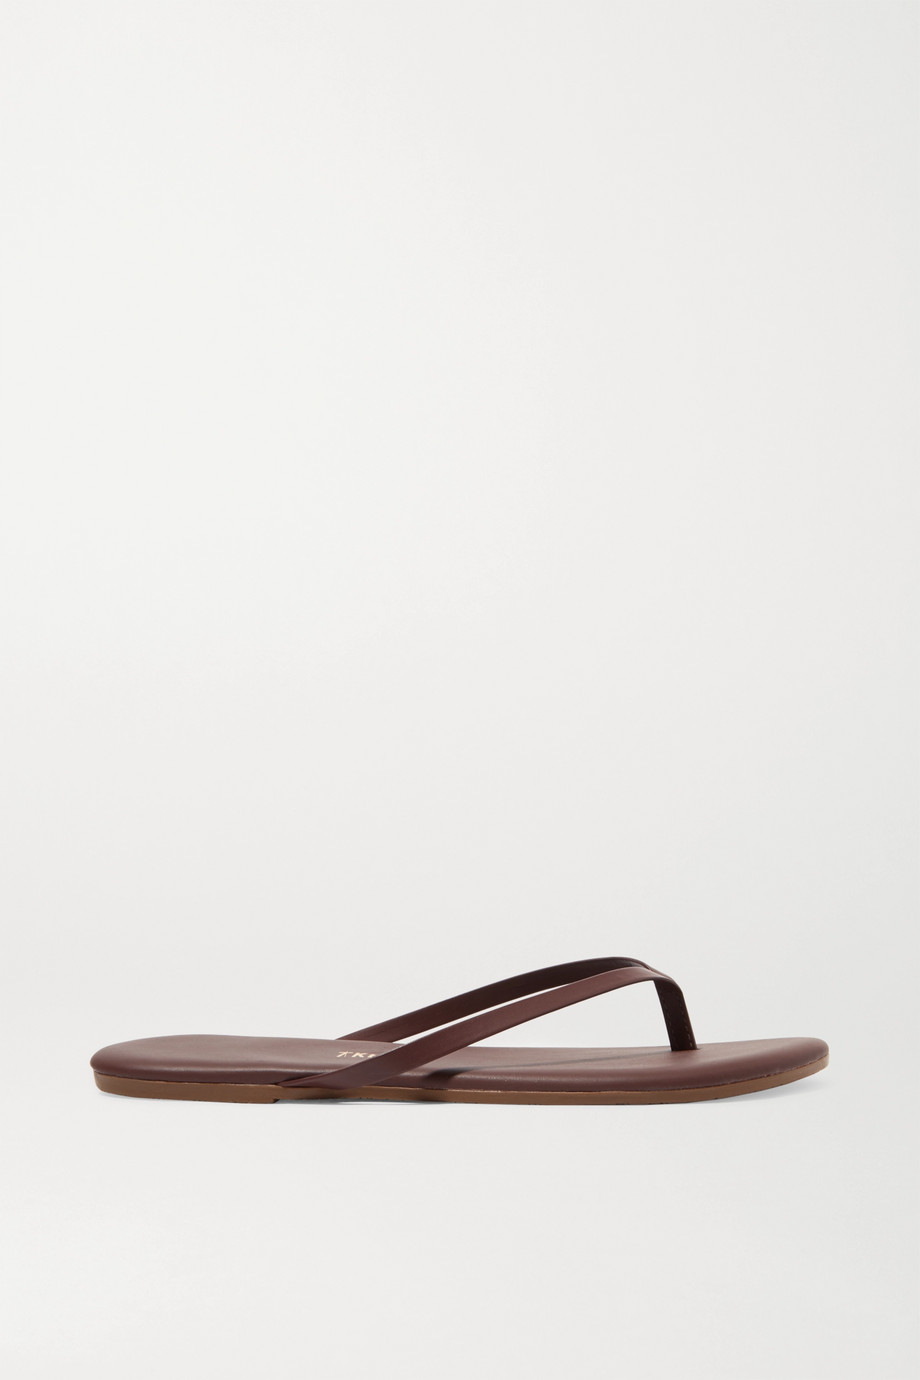 TKEES Lily leather flip flops